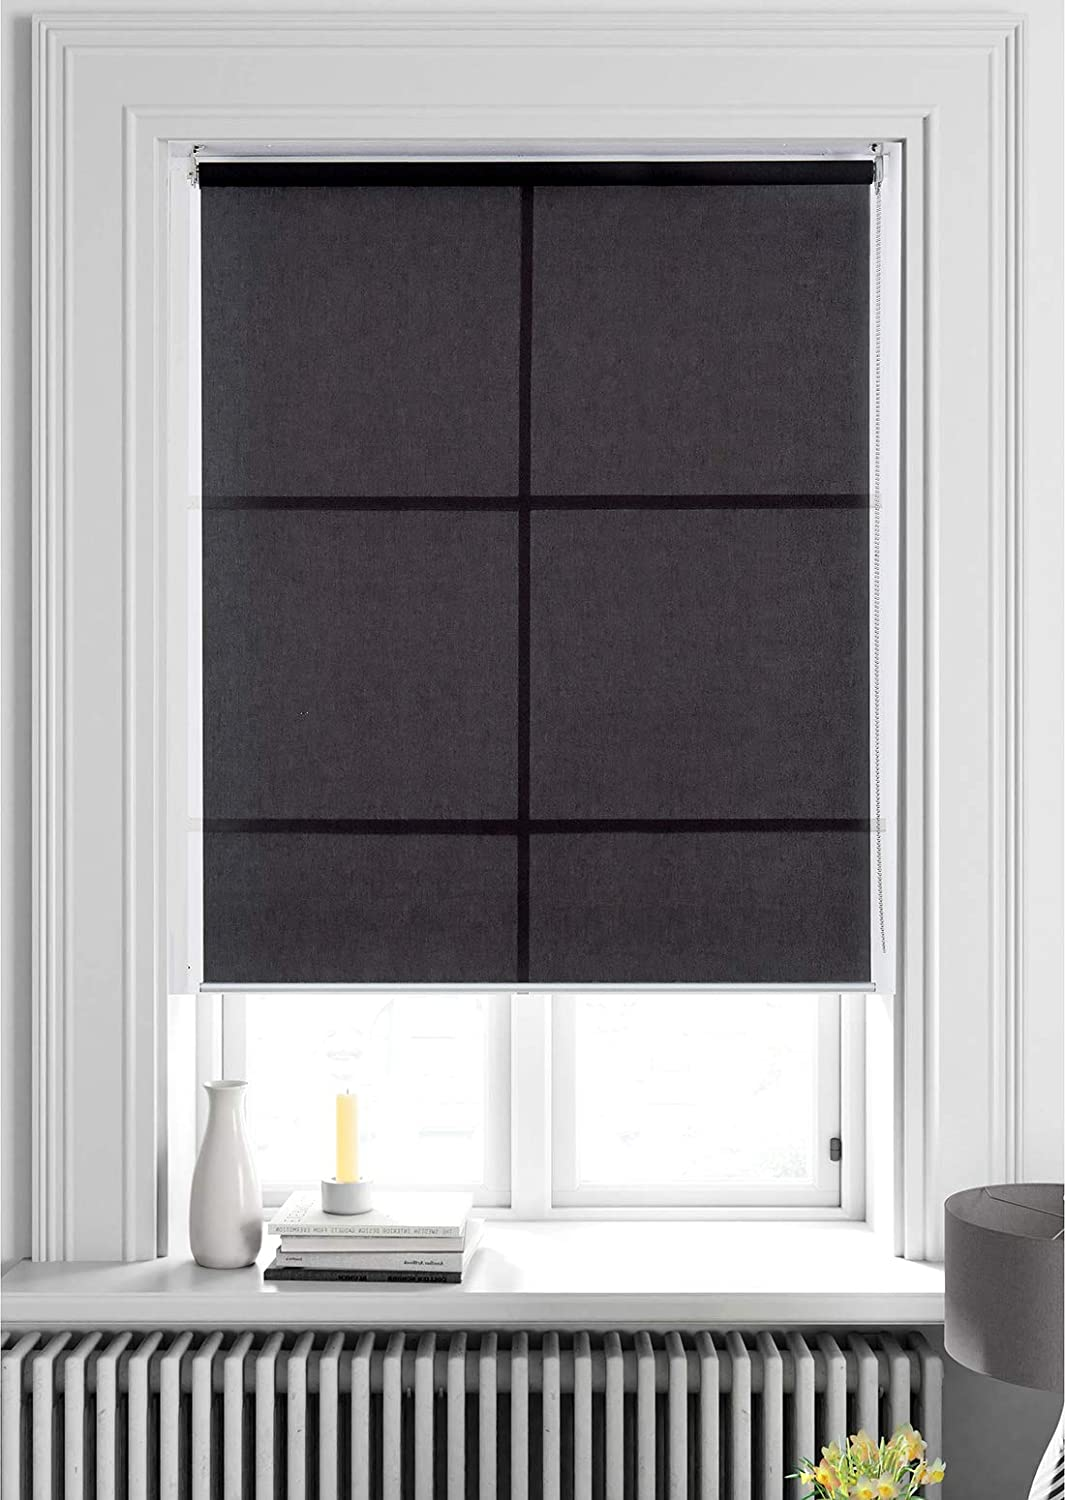 ALLBRIGHT Light Filtering Roller Shades, Classic Privacy Room Darkening Roller Sheer Shades Blinds,Easy Installation for Home and Office Windows (27 x 72 inches, Grey)